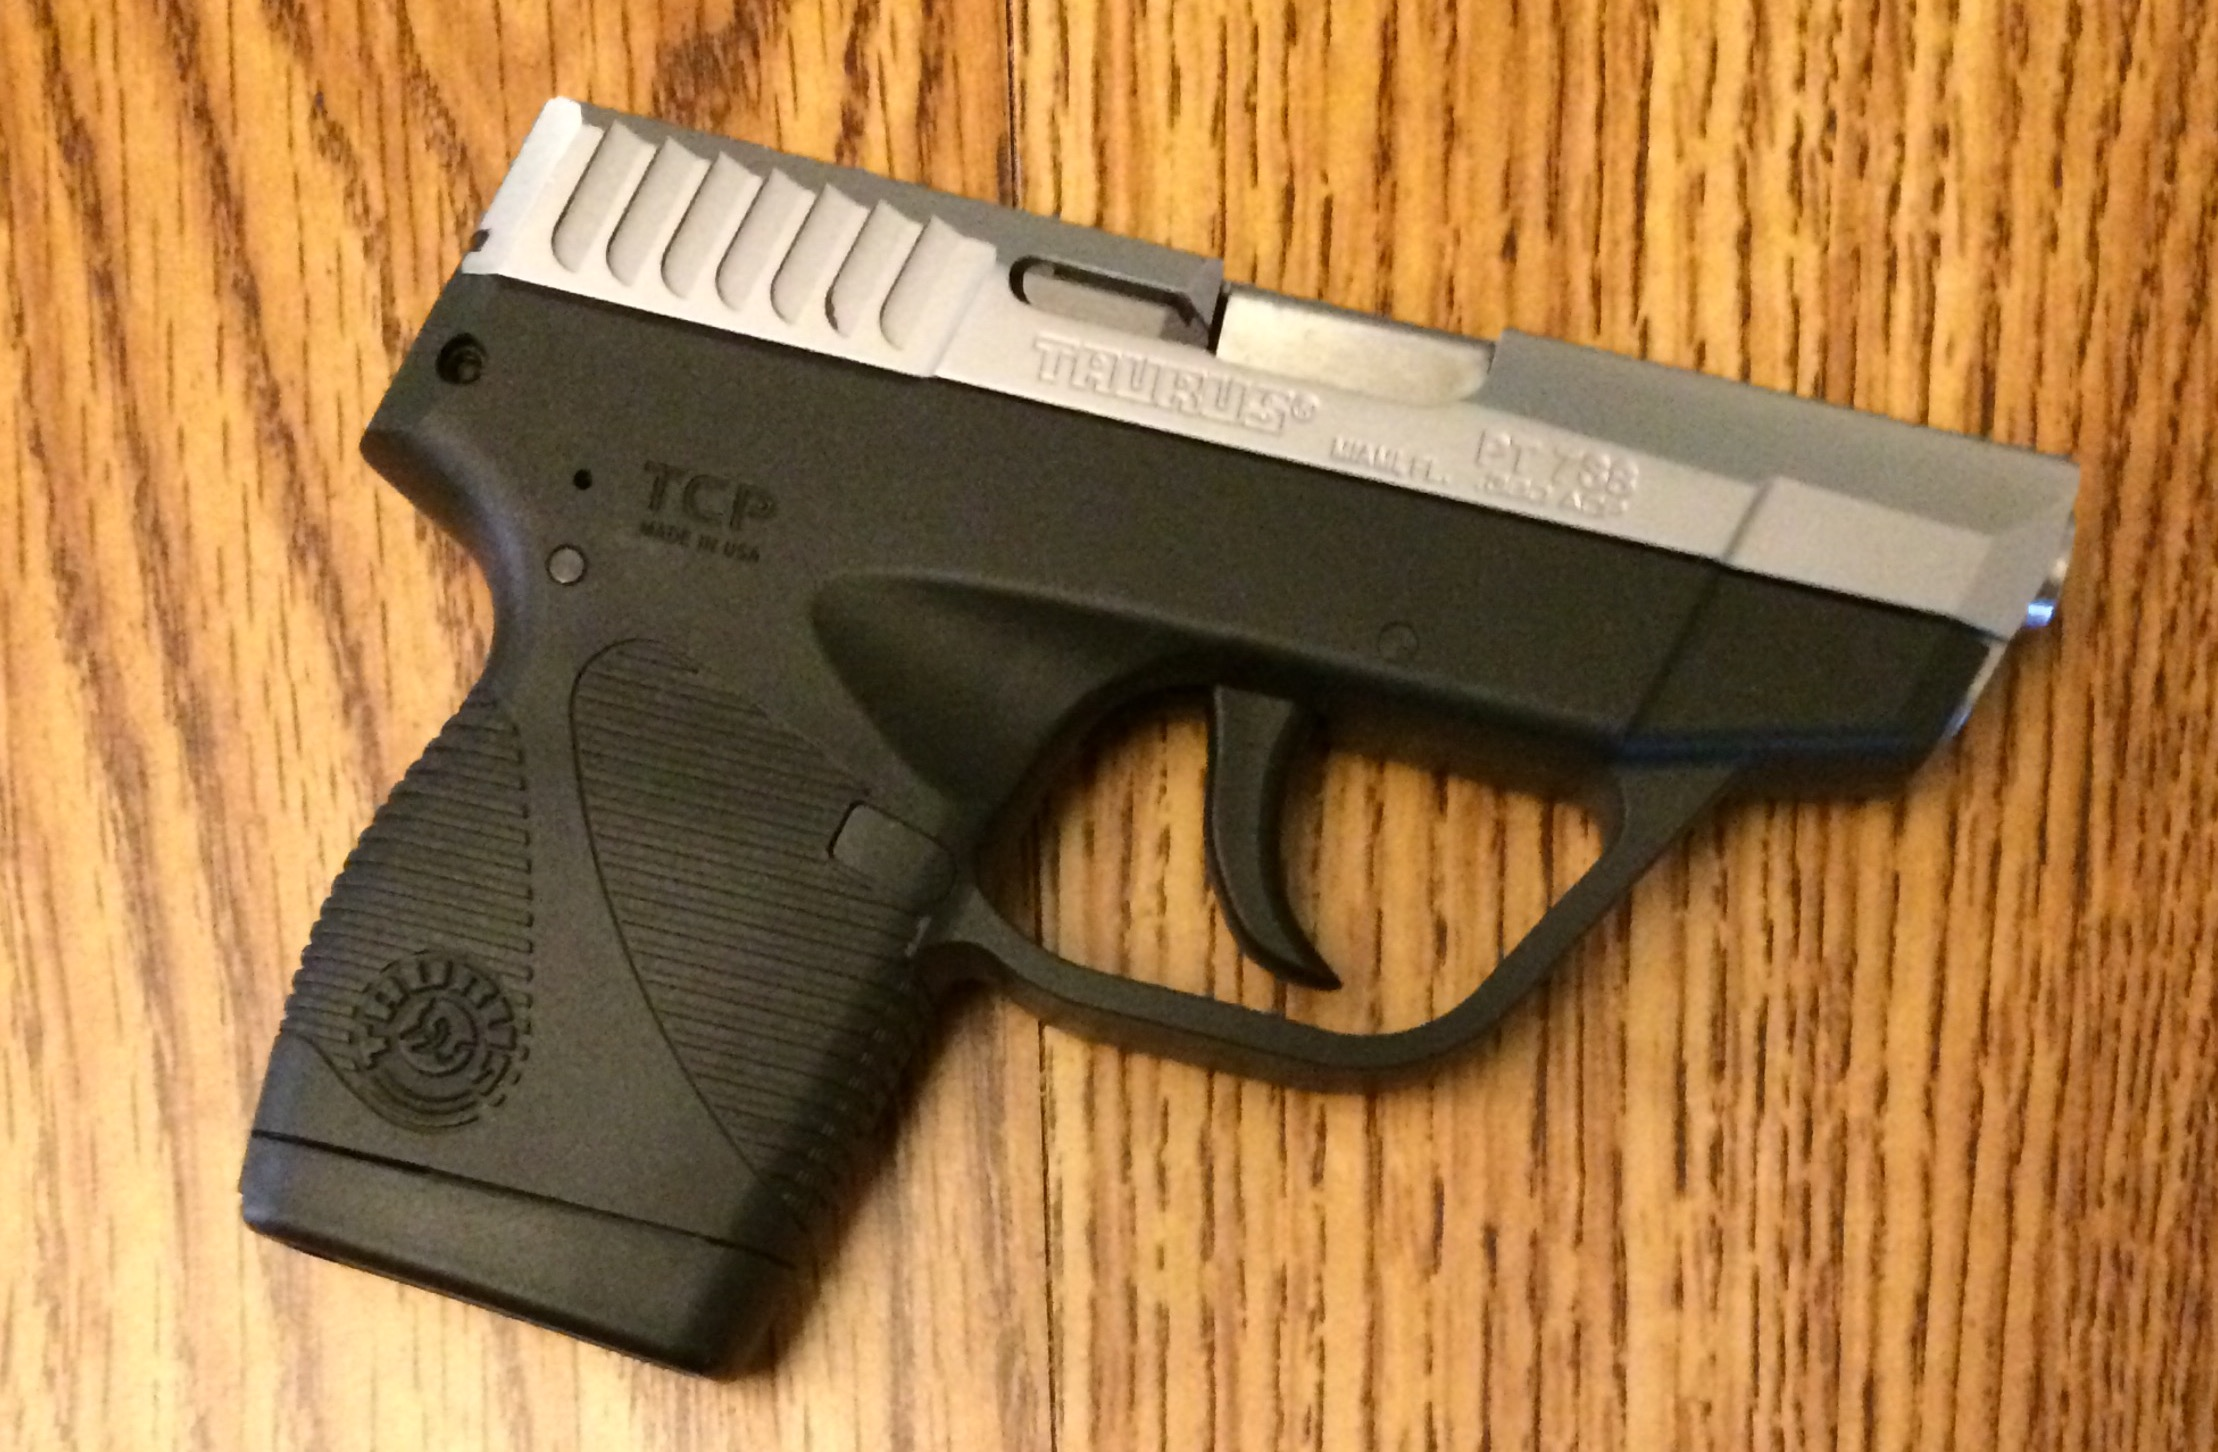 9mm Replacement For Ruger Lcp Page 4